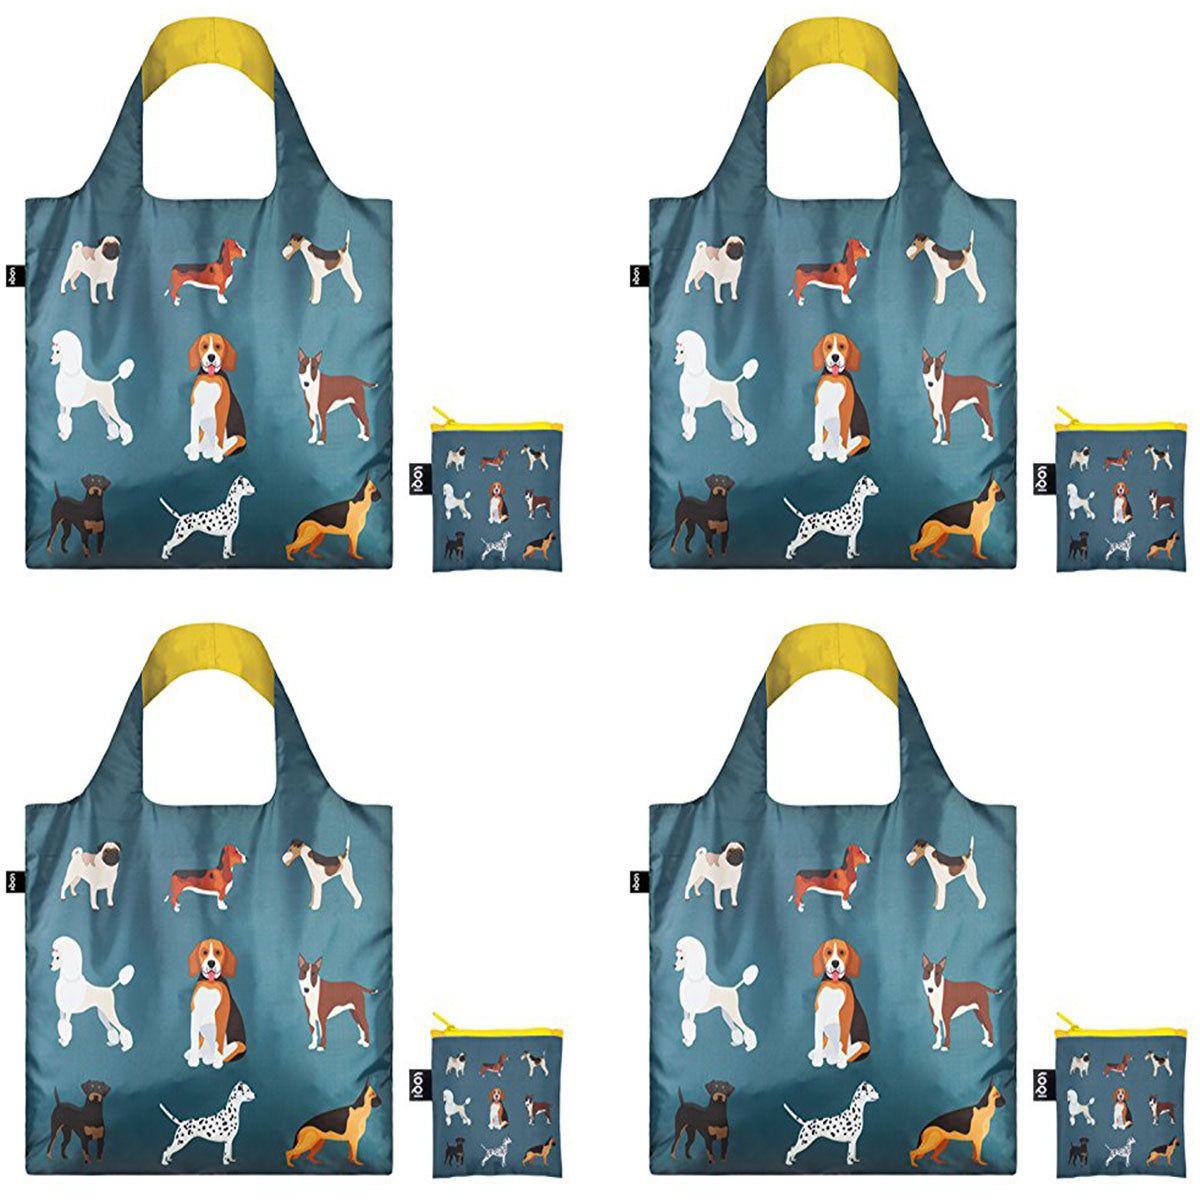 LOQI Cats & Dogs Shopping Bags (Set of 4)